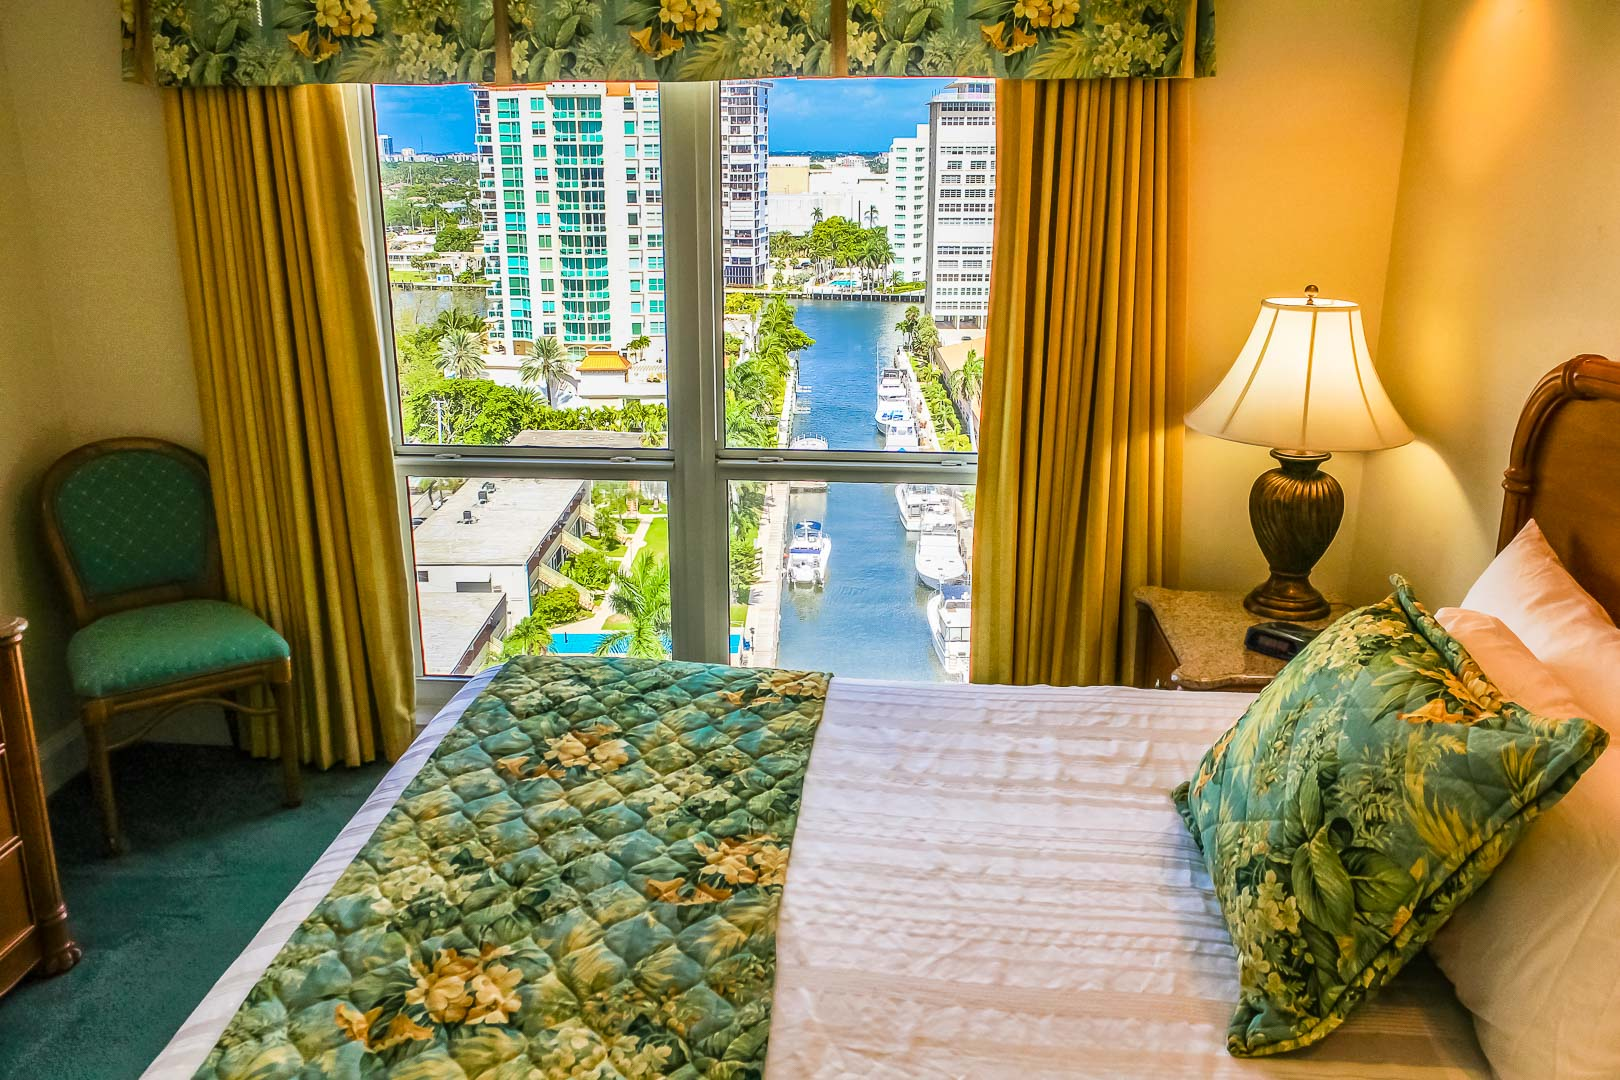 A master bedroom with a beautiful view at VRI's Ft. Lauderdale Beach Resort in Florida.